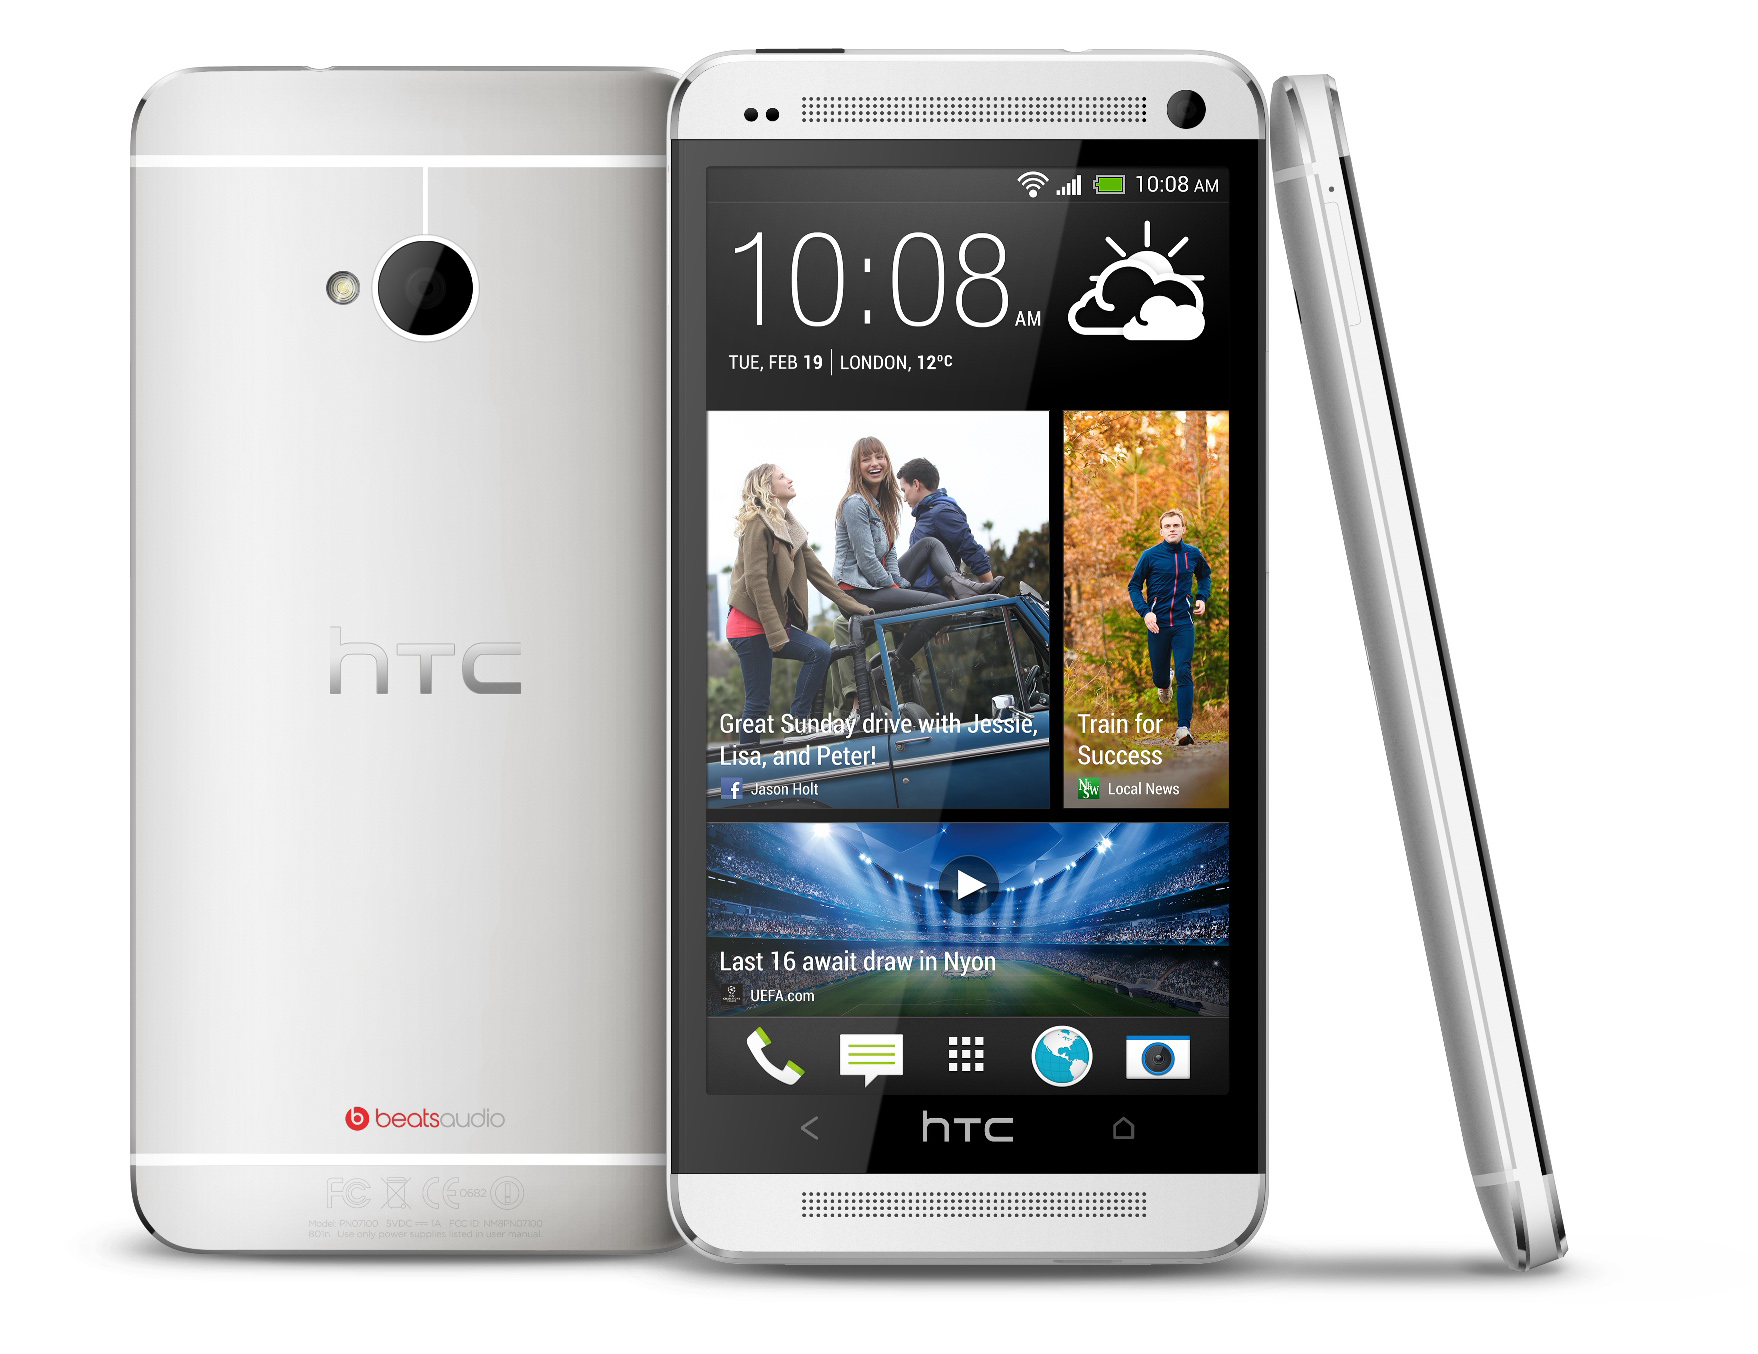 root rogers htc one m7 801agry with s on problem fix binary rh binarywasteland com User Manual PDF htc one s user manual